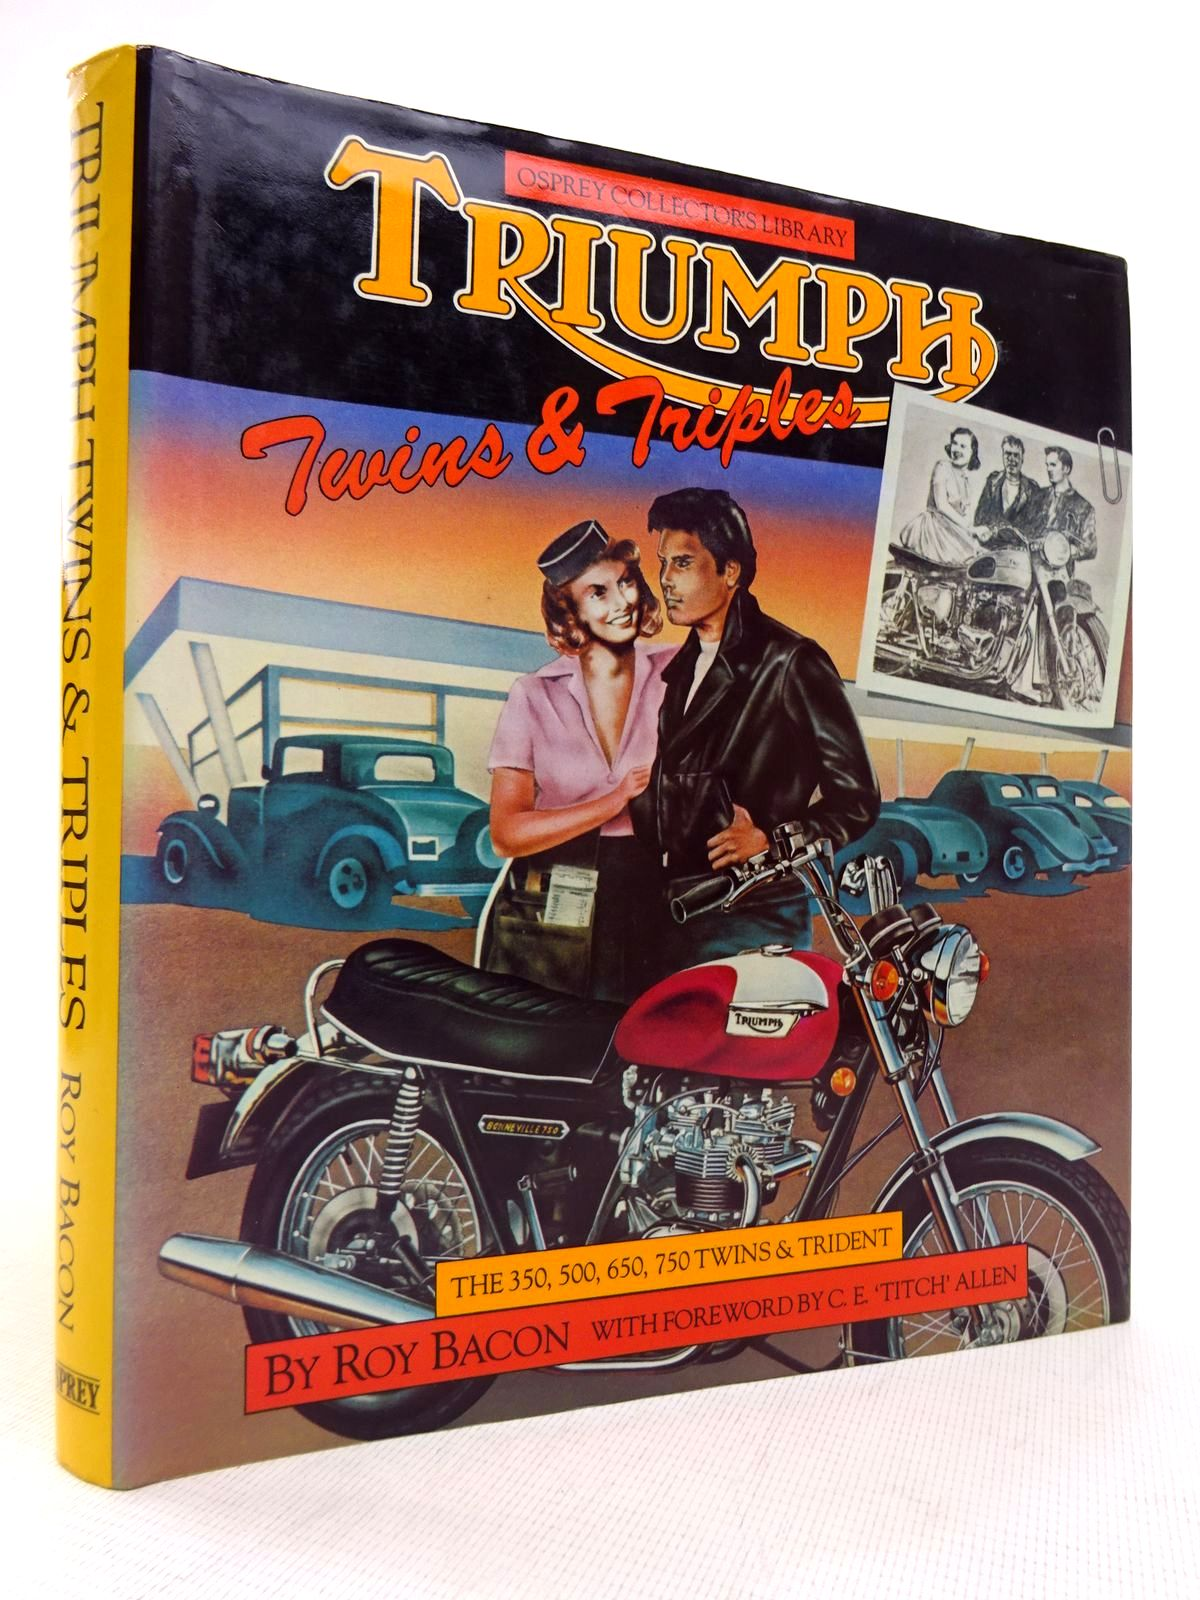 Photo of TRIUMPH TWINS & TRIPLES THE 350, 500, 650, 750 TWINS AND TRIDENT written by Bacon, Roy published by Osprey Publishing (STOCK CODE: 1816945)  for sale by Stella & Rose's Books